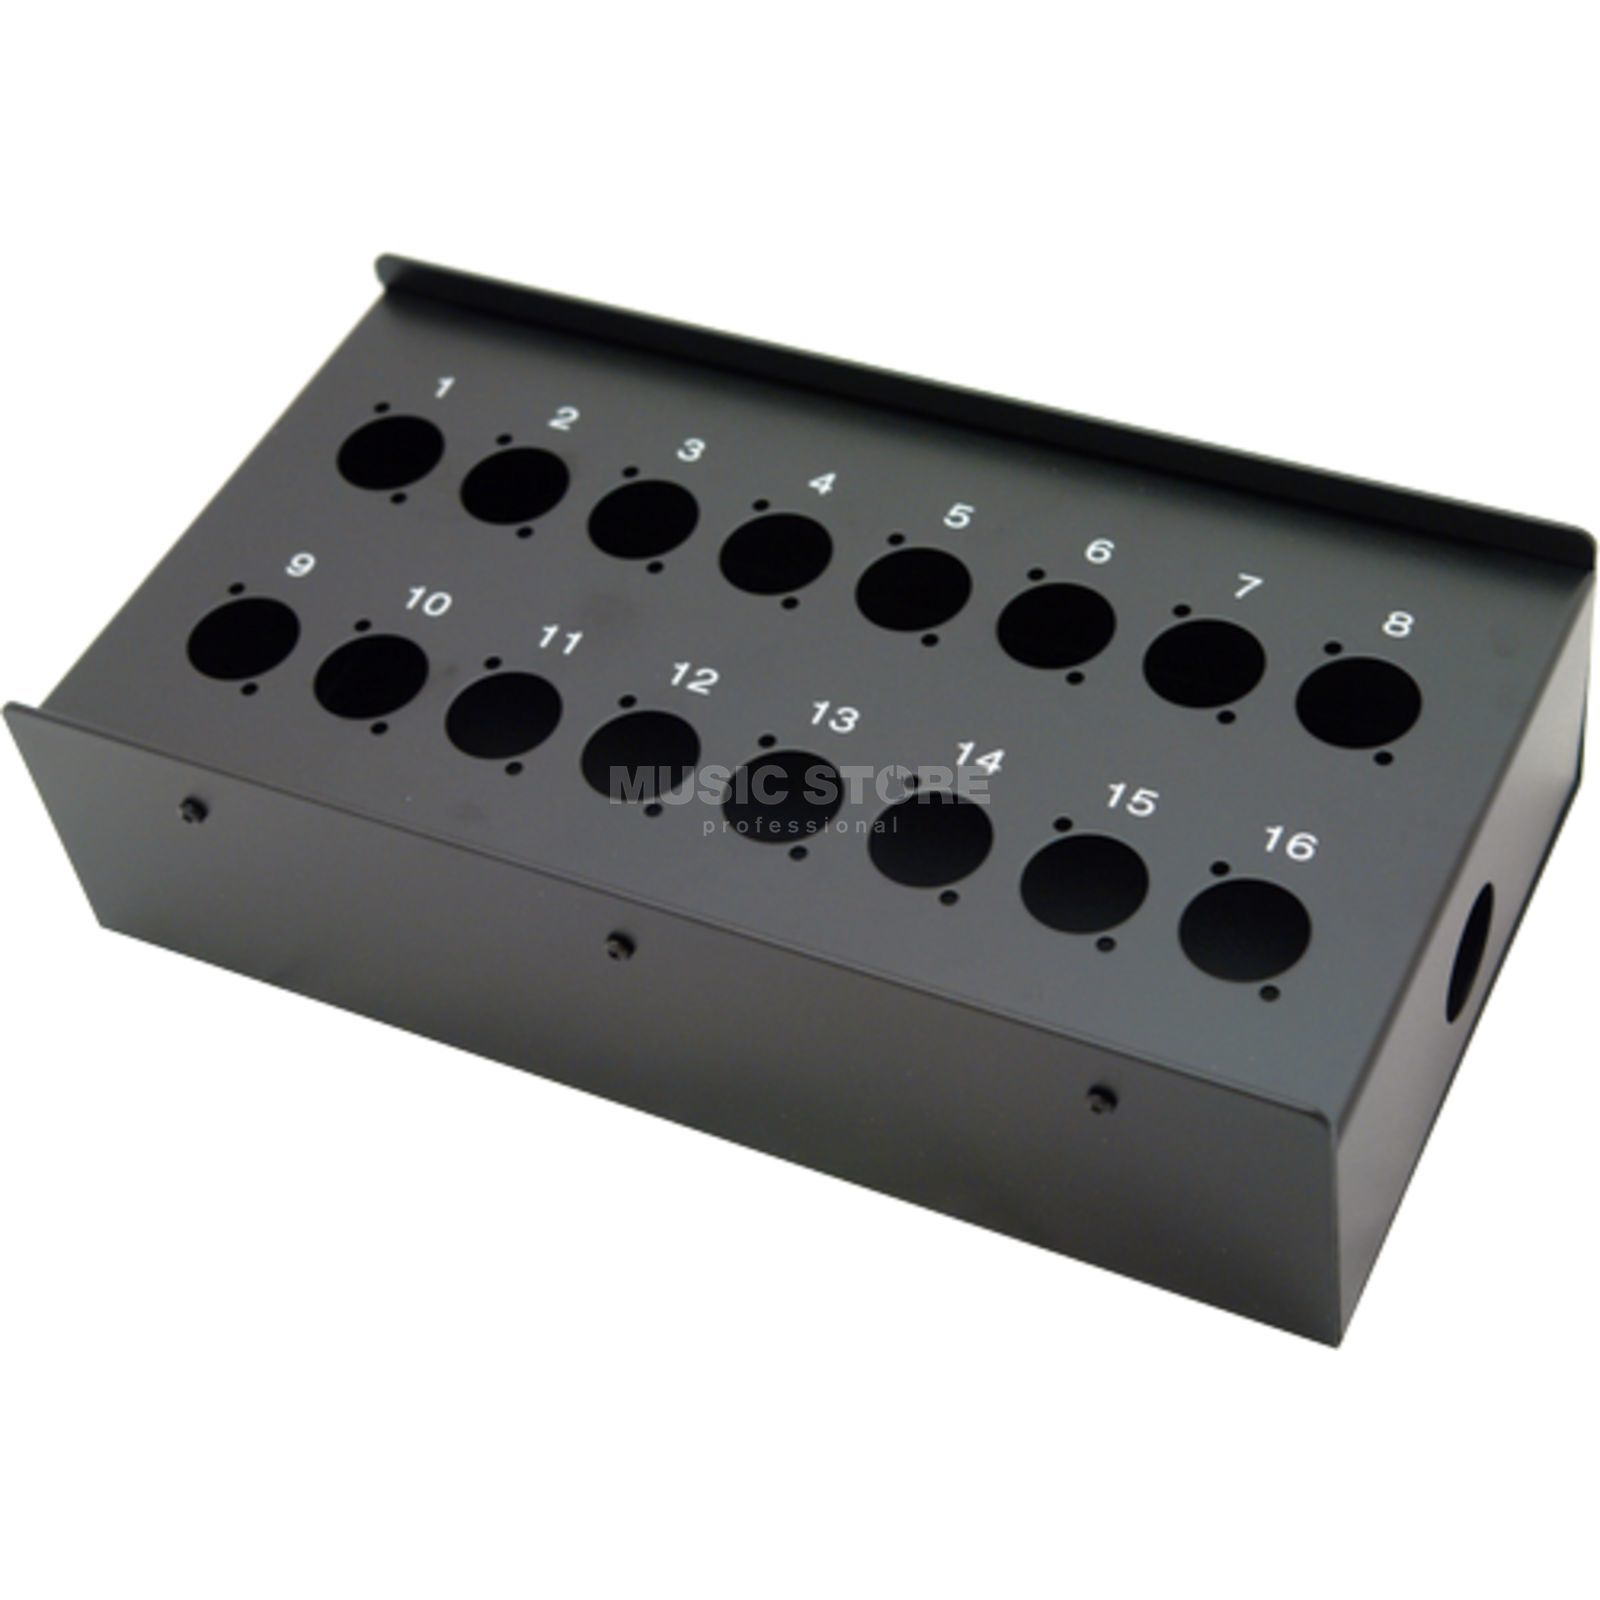 MUSIC STORE Stagebox - 16 / 16-Holes for Floor/Wall, D-Series   Produktbillede